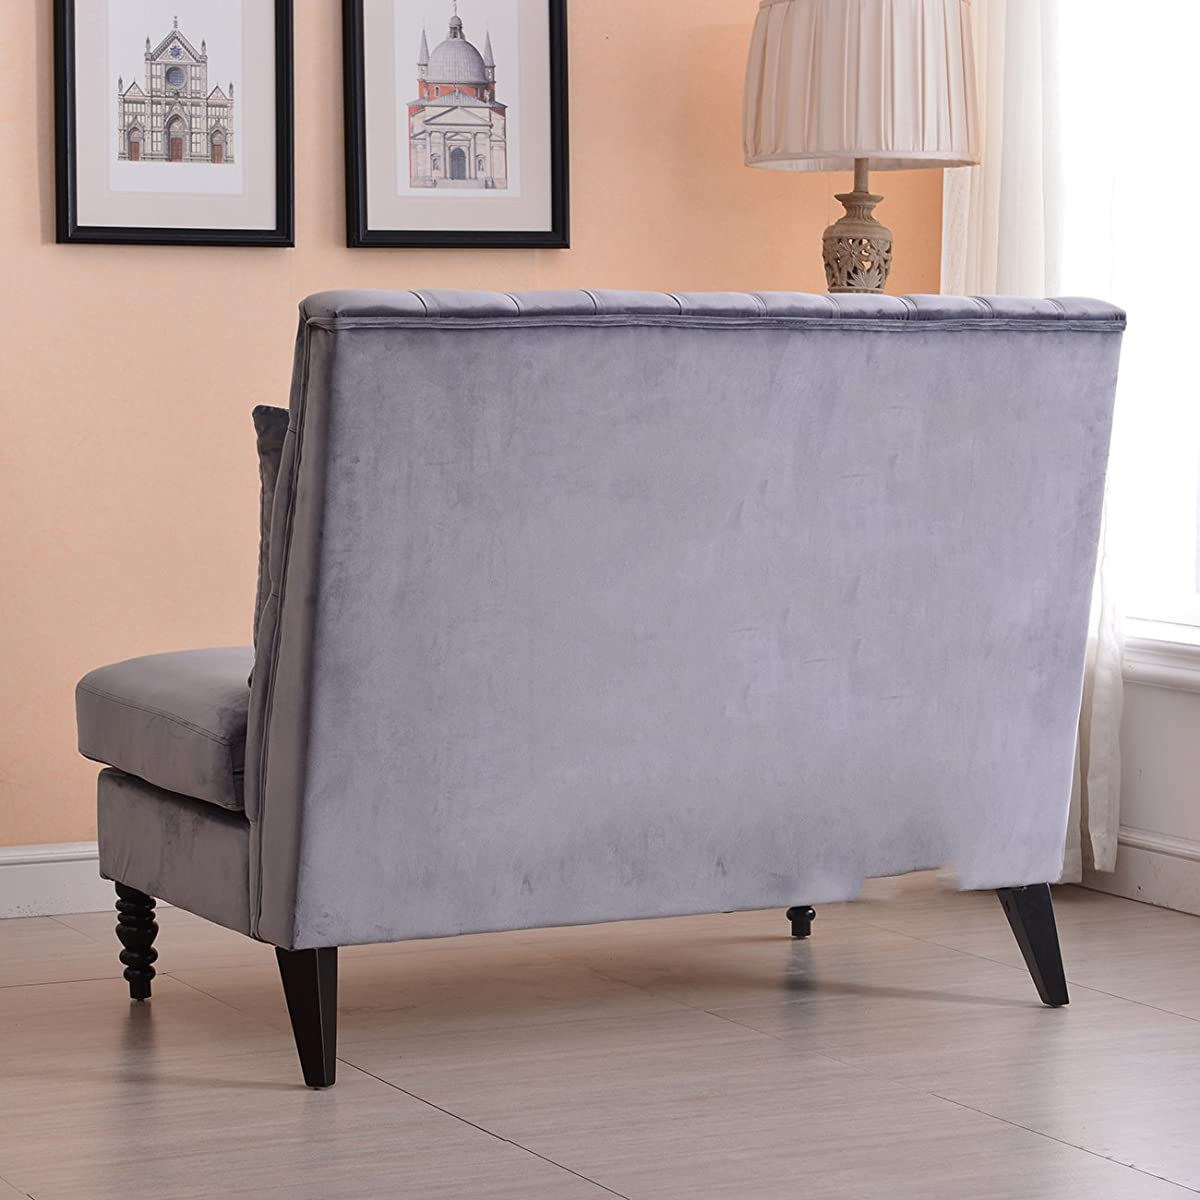 Velvet Modern Tufted Settee Bench Bedroom Sofa High Back Love Seat Grey